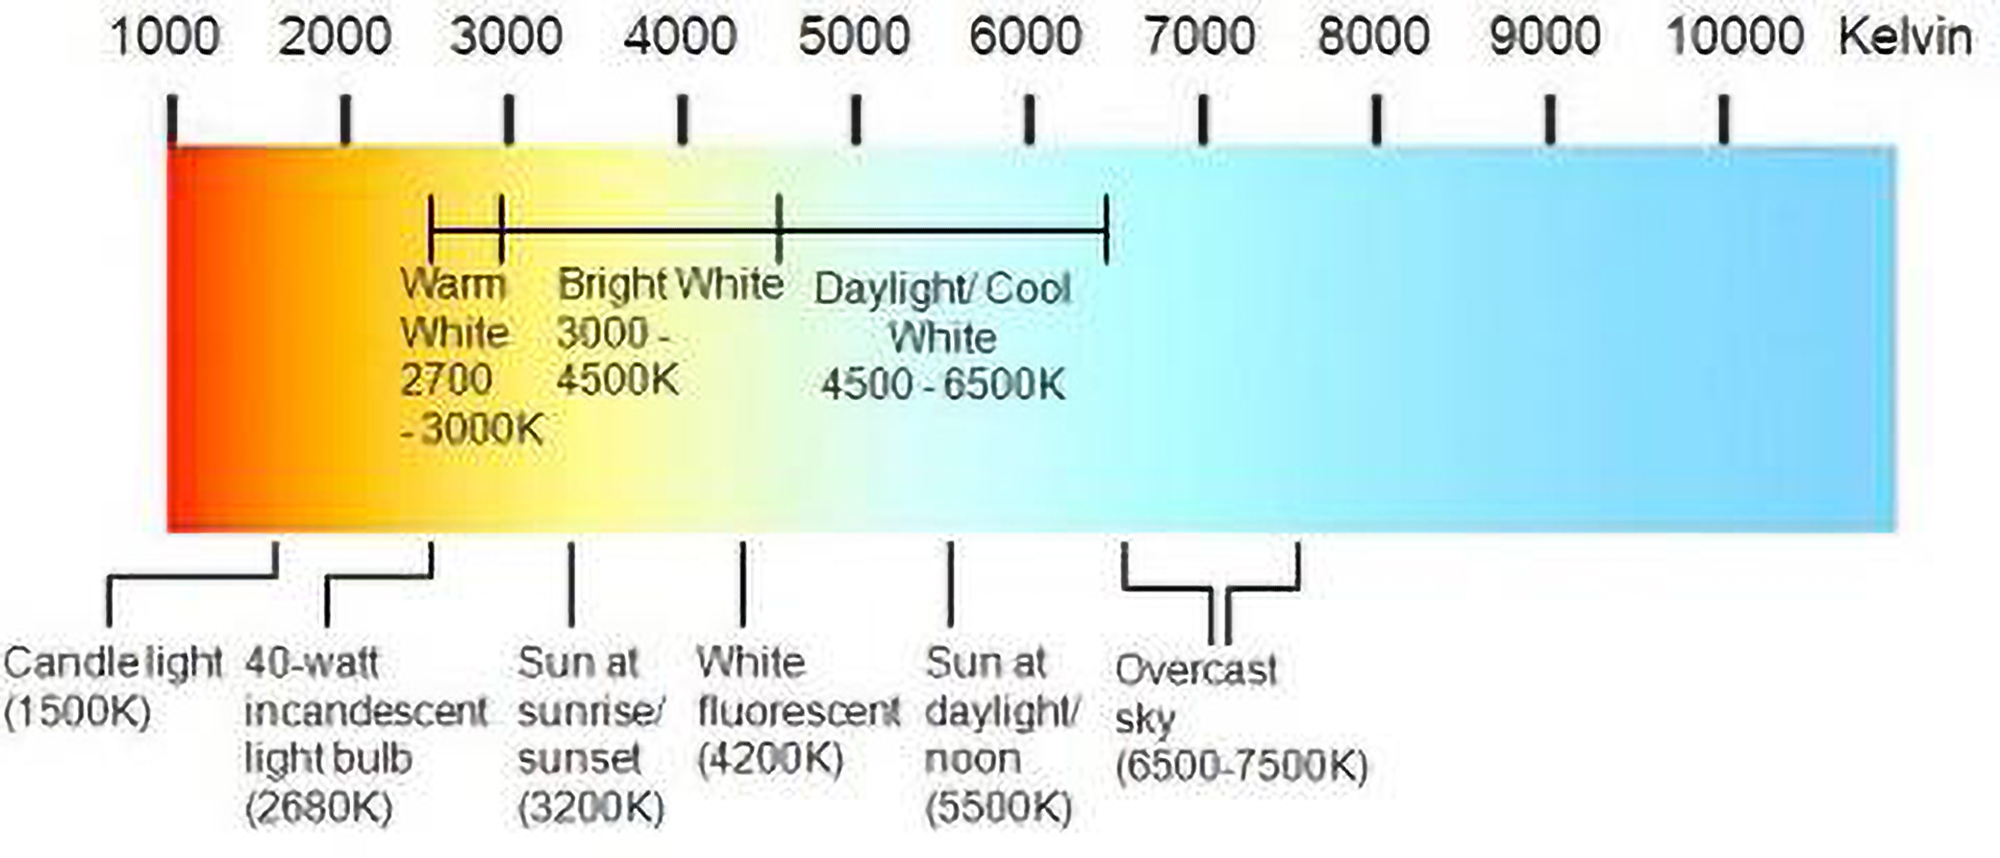 Led light color chart image collections free any chart examples led kelvin color chart image collections free any chart examples led light color chart image collections nvjuhfo Image collections